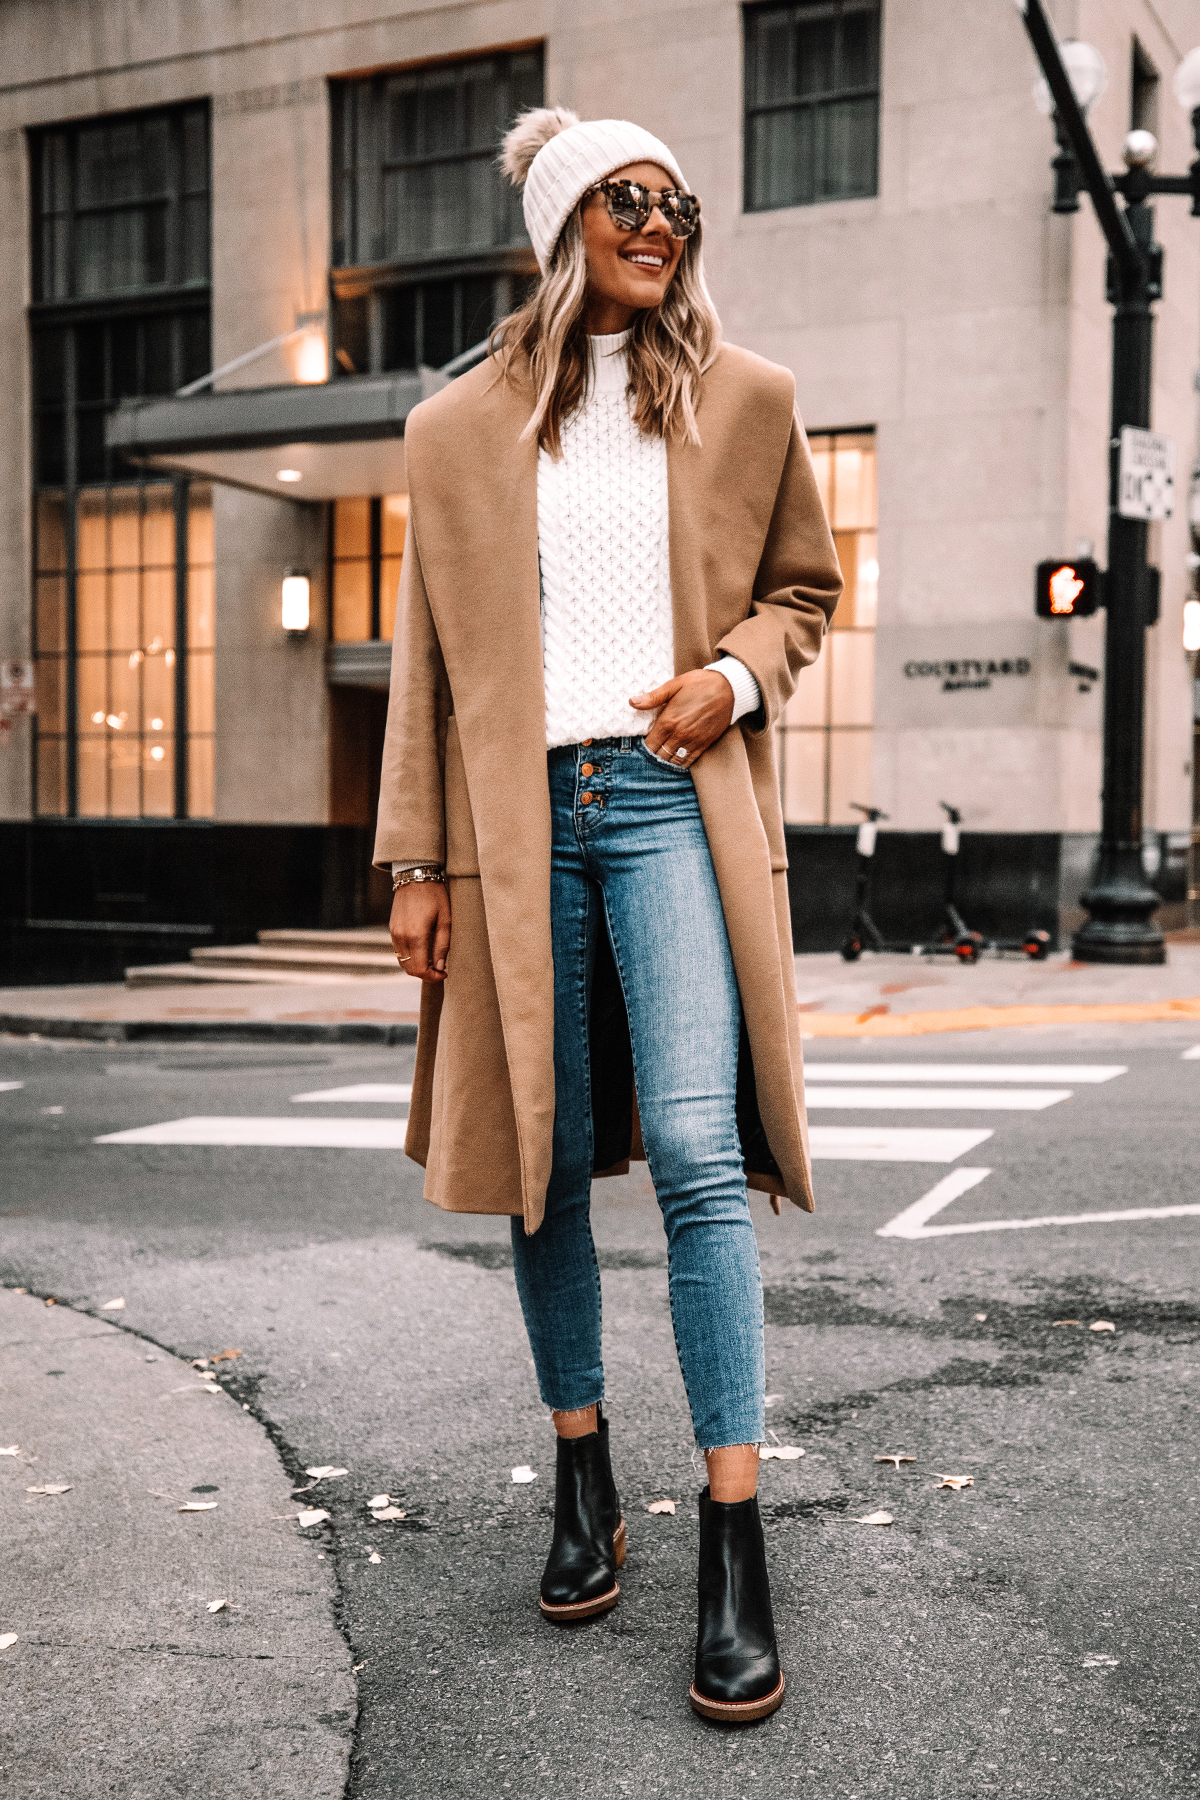 Fashion Jackson Wearing Jcrew Camel Wrap Coat White Swetaer Raw Hem Jeans Black Lug Sole Boots White Beanie Winter Outfit Street Style